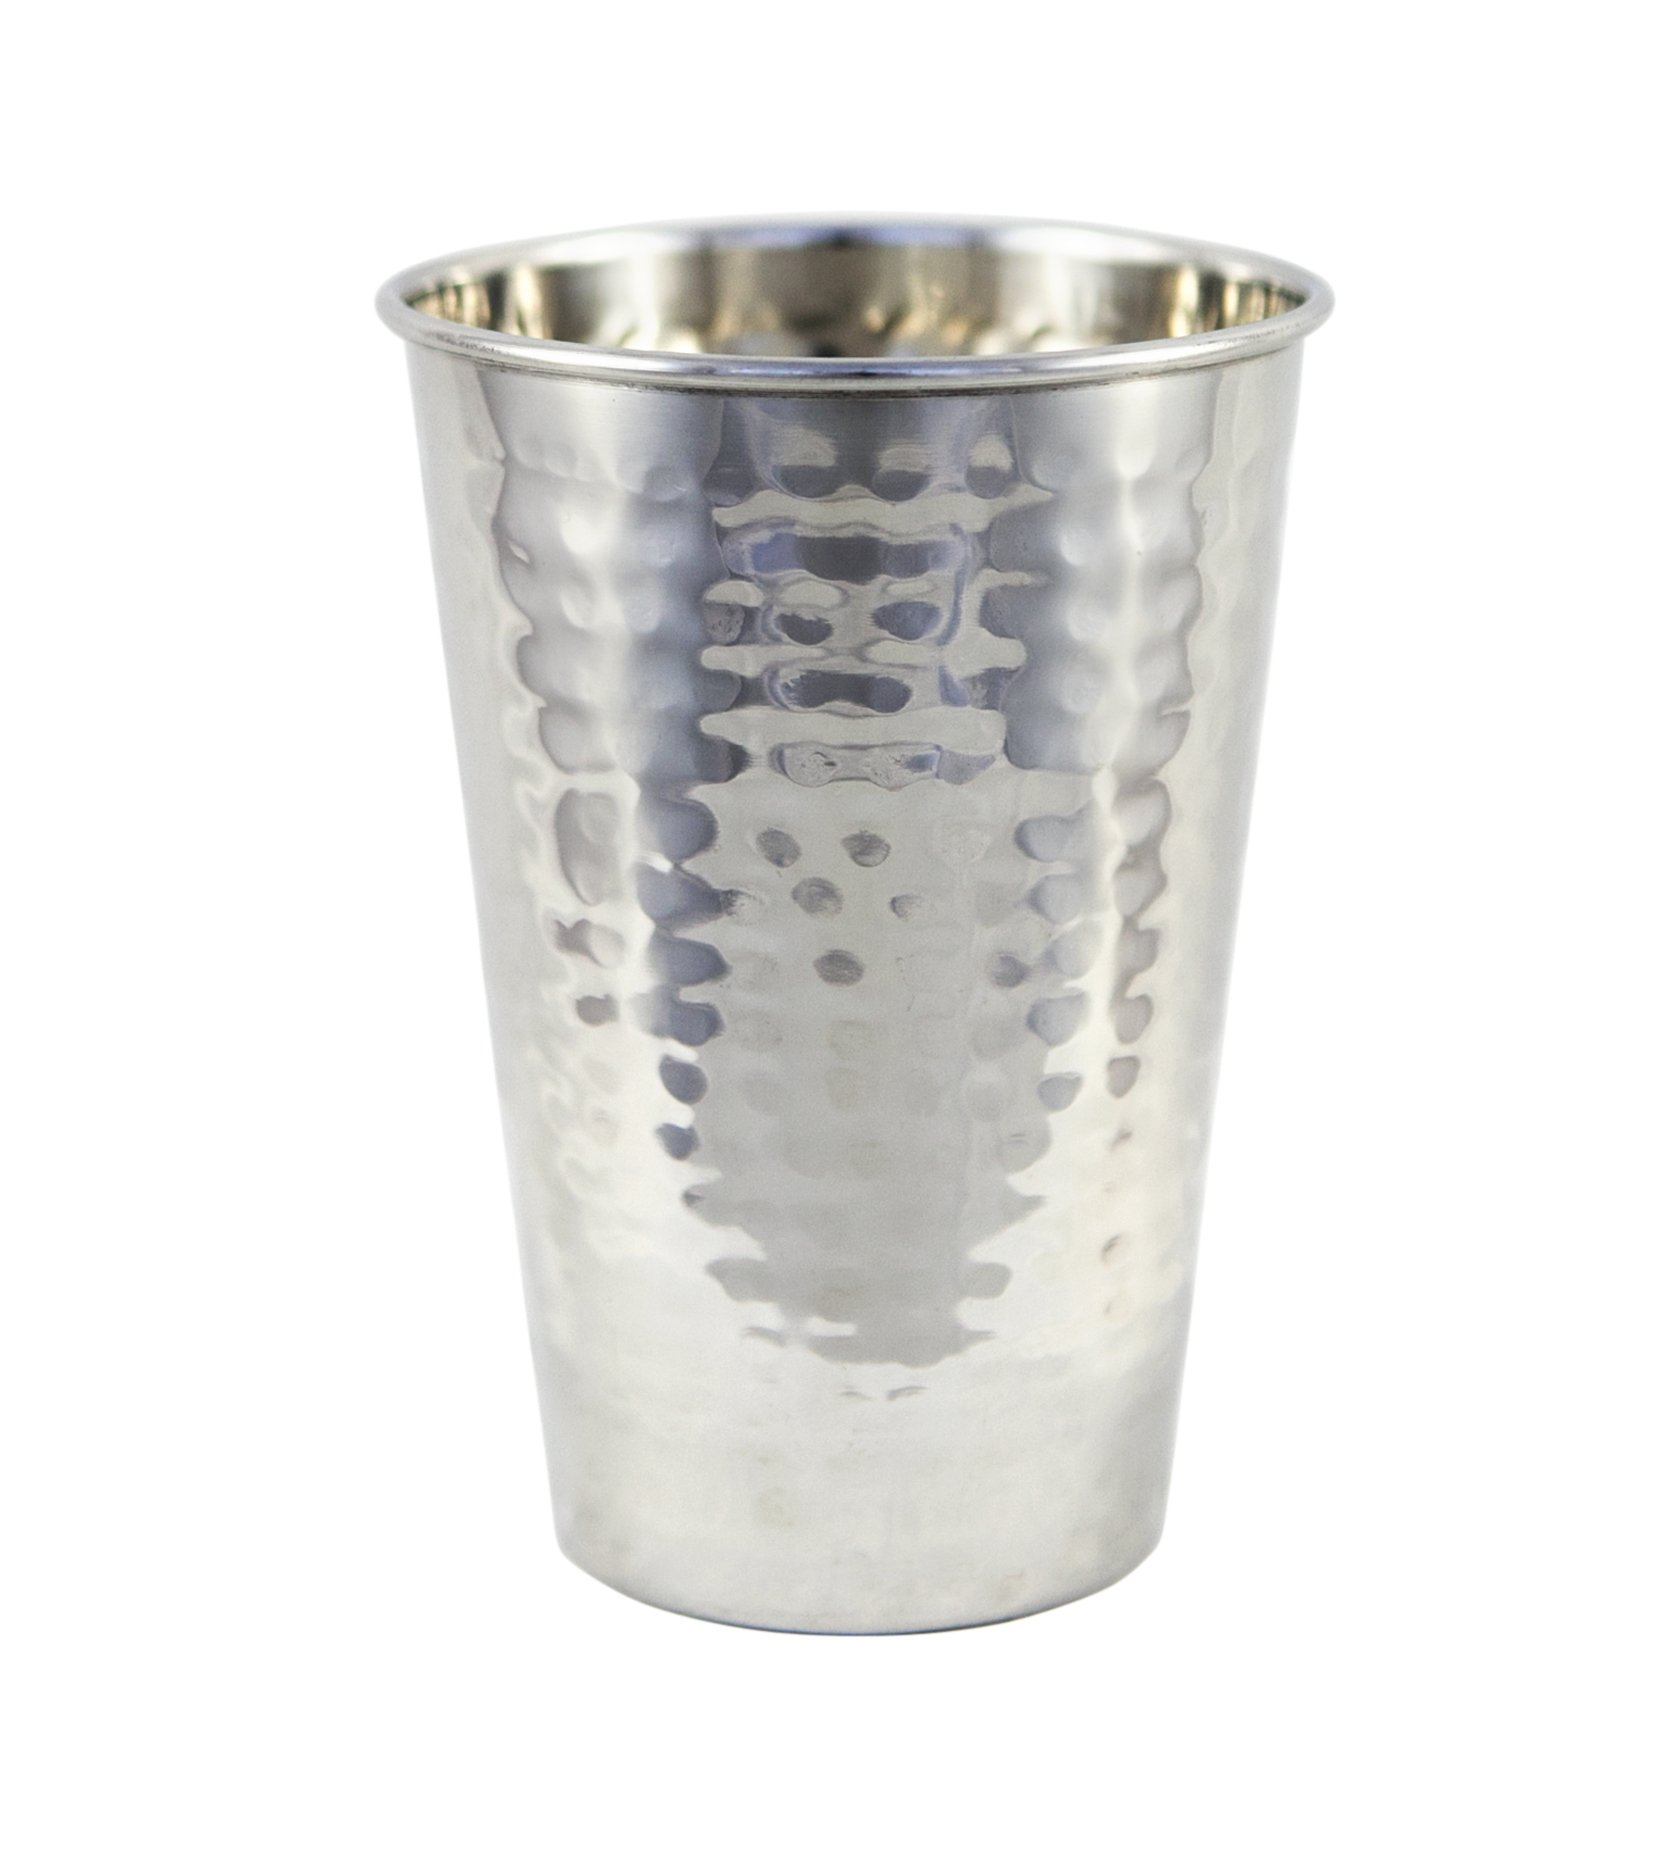 Premium Quality Hammered Stainless Steel Tumbler - 100% Pure Hammered Stainless Steel Tumbler by Alchemade (Image #1)